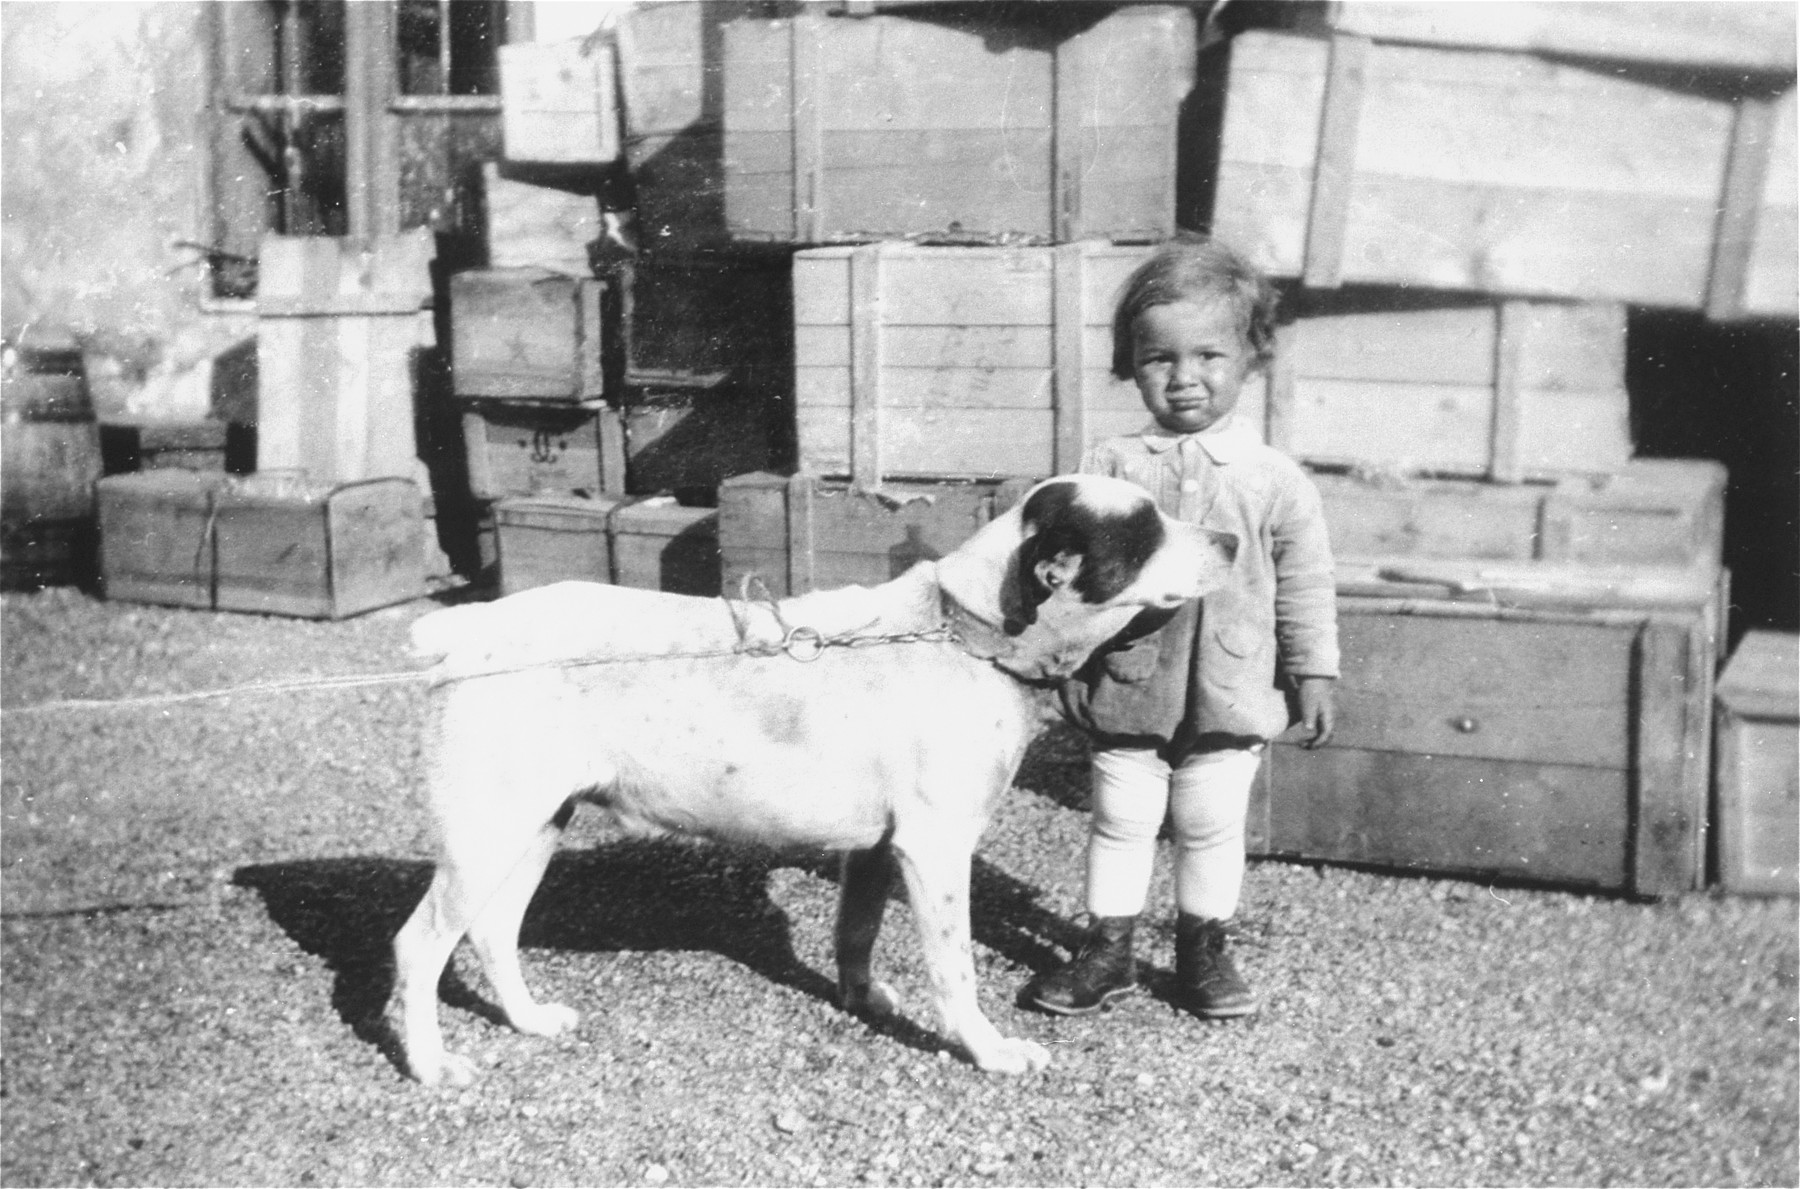 Portrait of the donor's son, Heinrich Muller, with a dog in the courtyard behind their home and business in Hlohovec, Czechoslovakia.